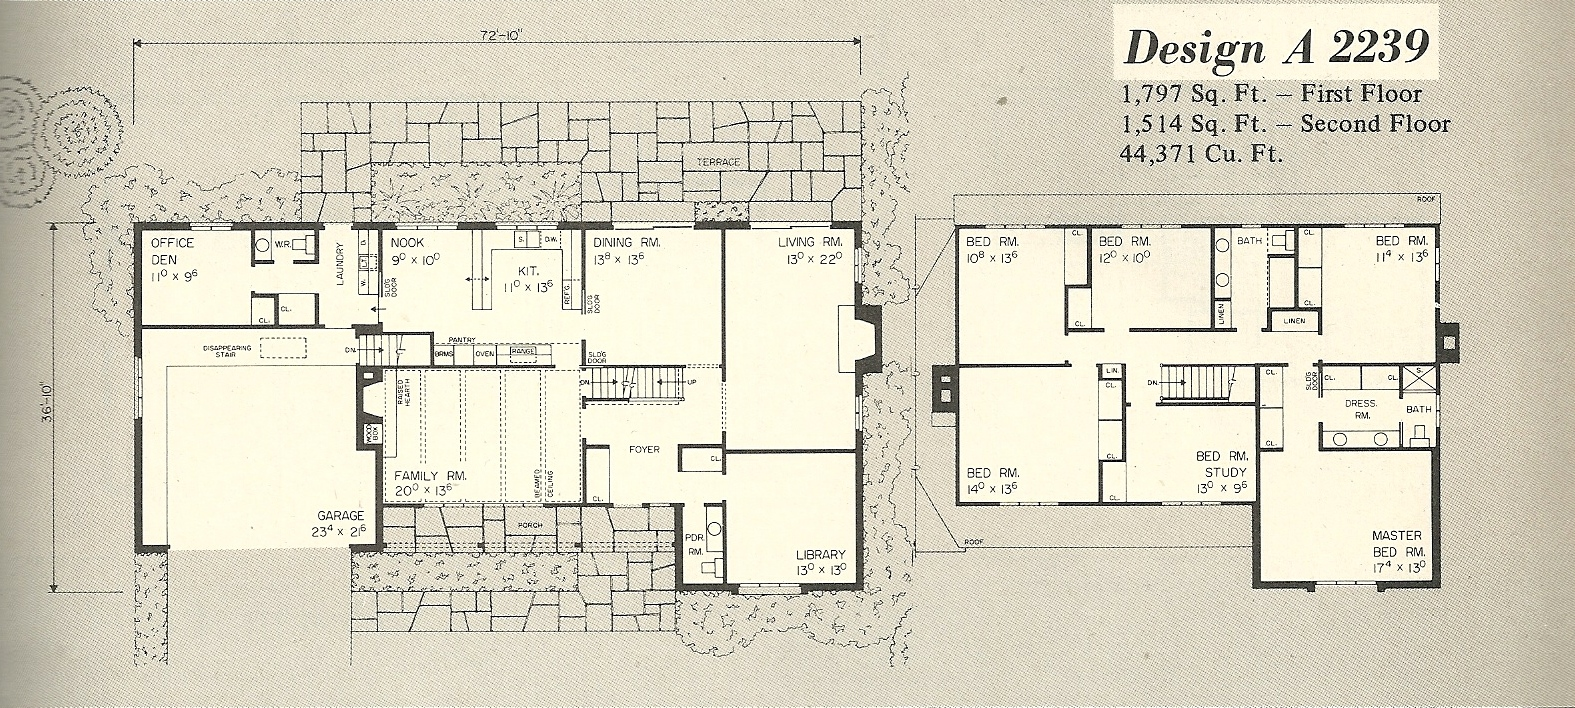 Vintage house plans 2239a antique alter ego for 1970s house floor plans